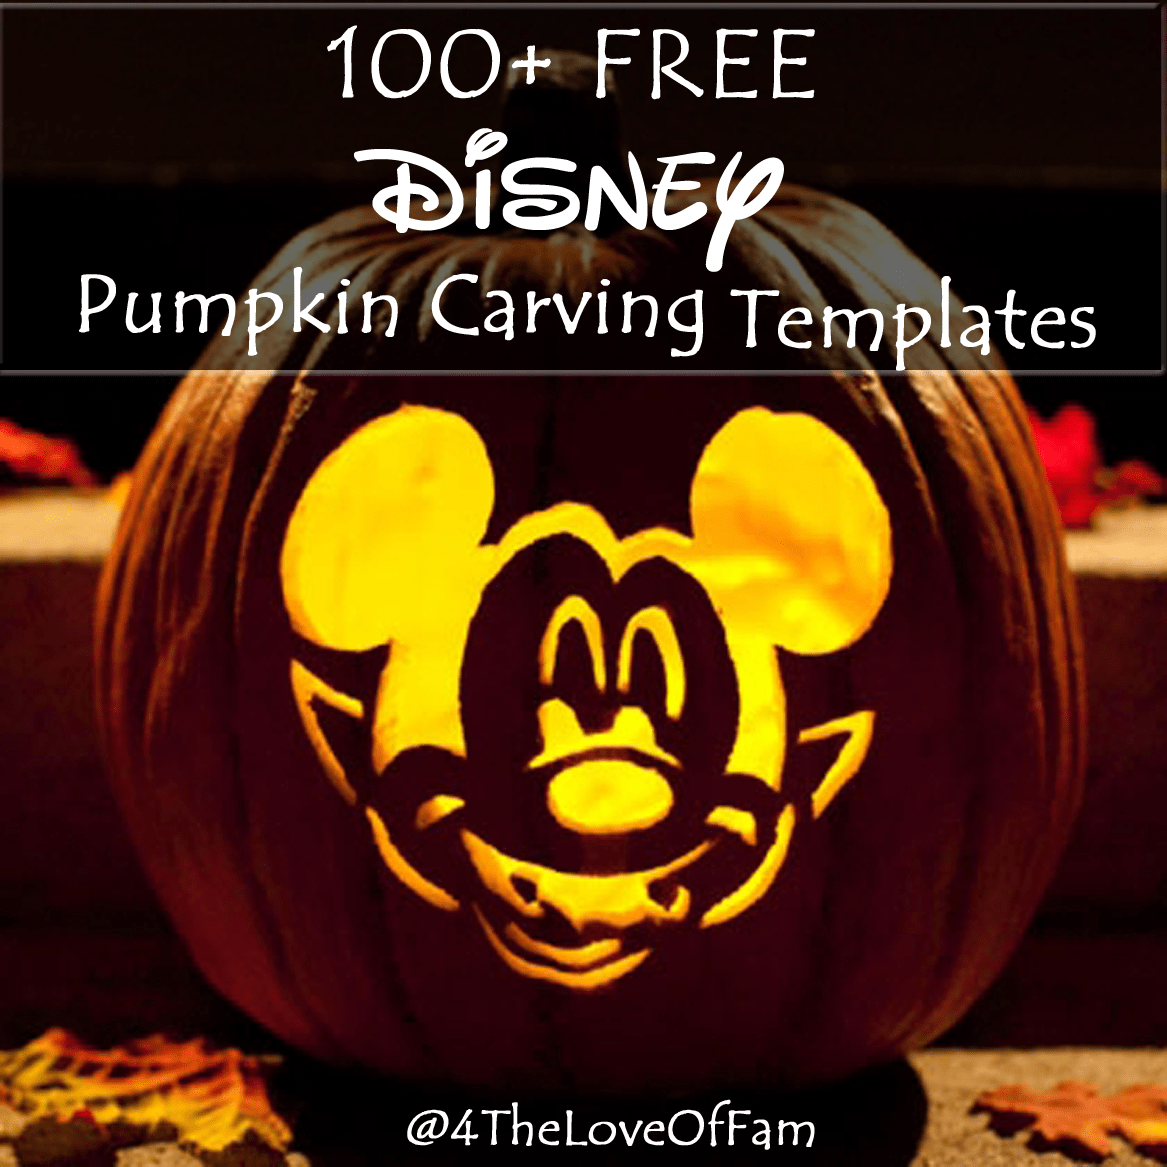 image relating to Disney Pumpkin Carving Patterns Free Printable identified as 100+ Totally free Disney Halloween Pumpkin Carving Stencil Templates